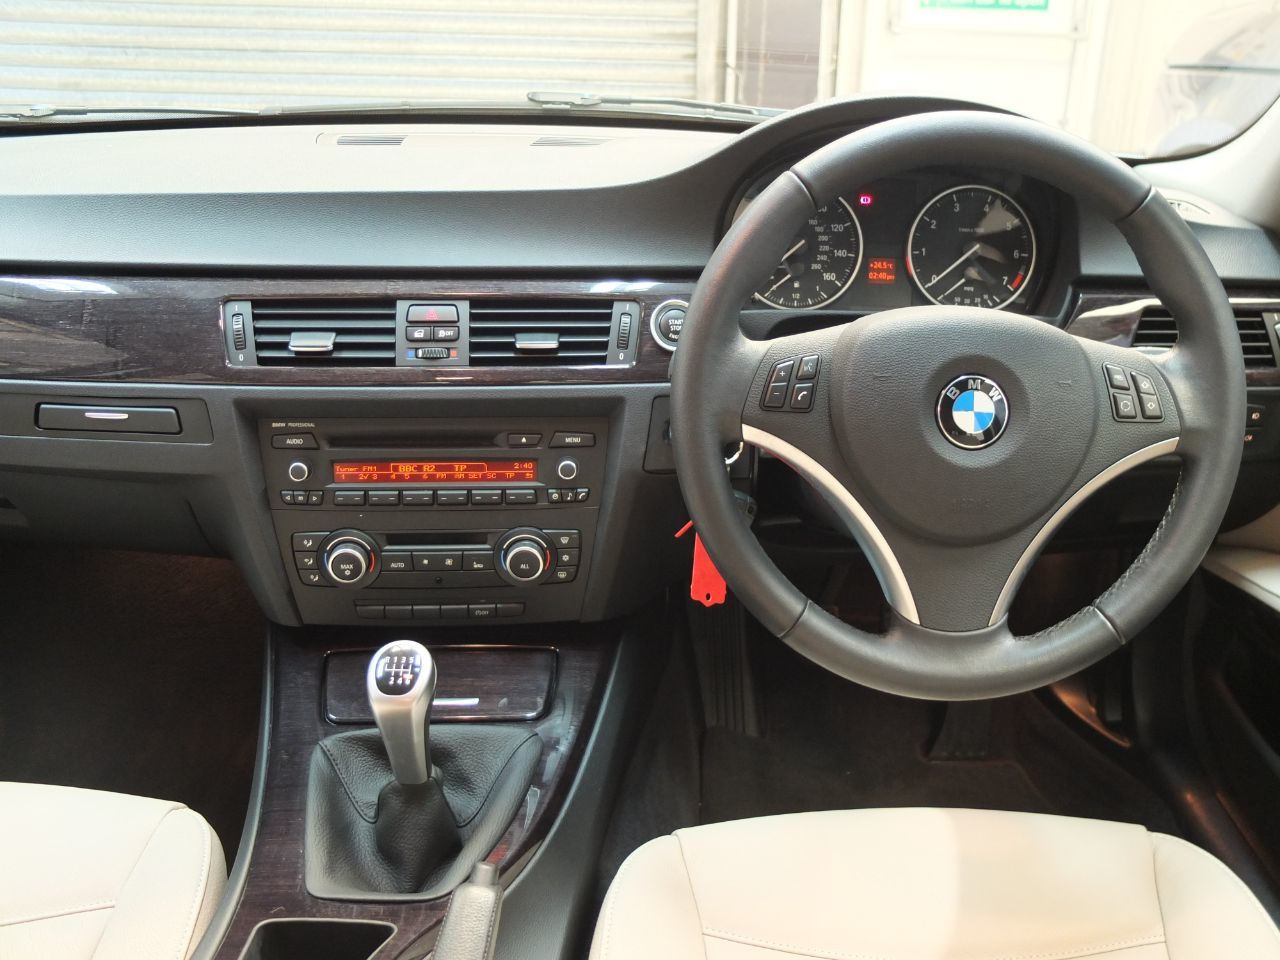 BMW 3 Series 2.0 318i Exclusive Edition Saloon Petrol Bluewater Metallic